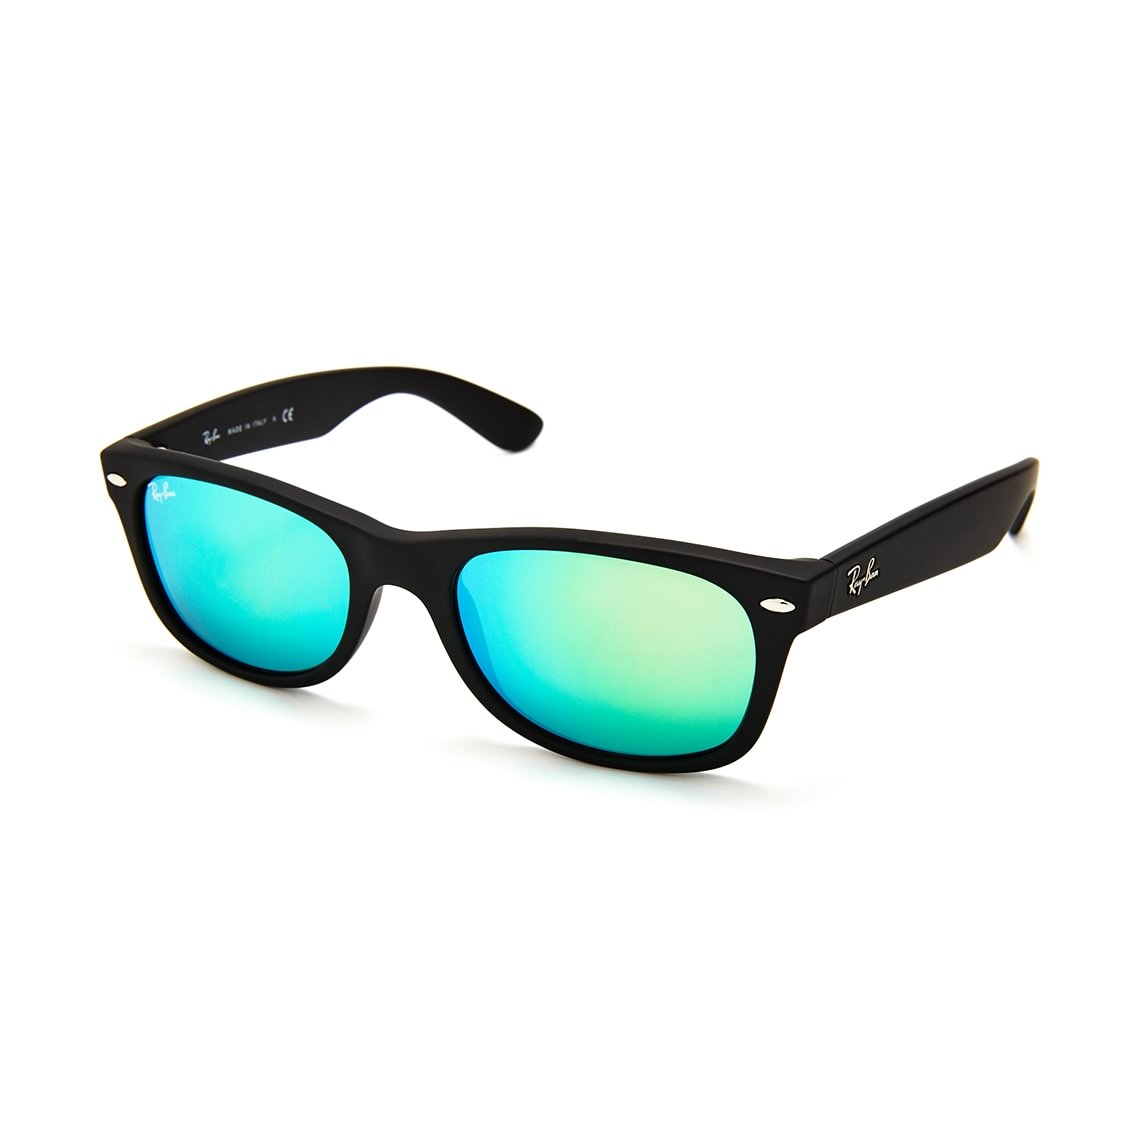 Ray-Ban New Wayfarer RB2132 622/19 5218